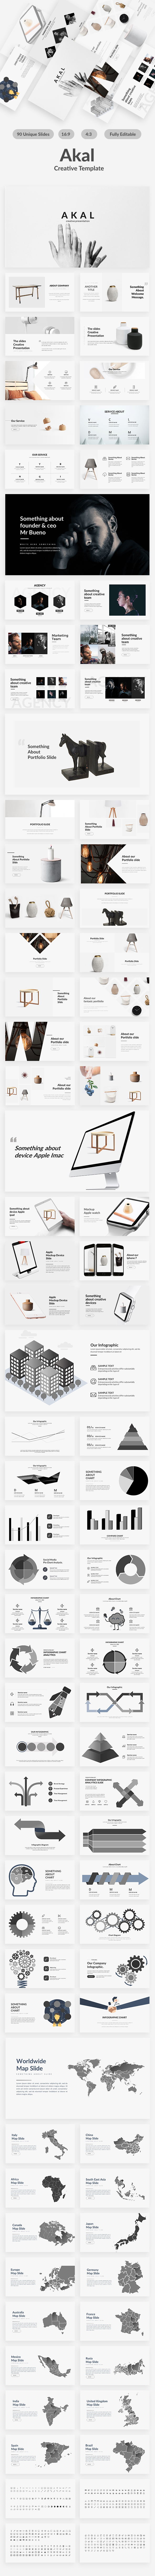 Akal Minimal Google Slide Template - Google Slides Presentation Templates